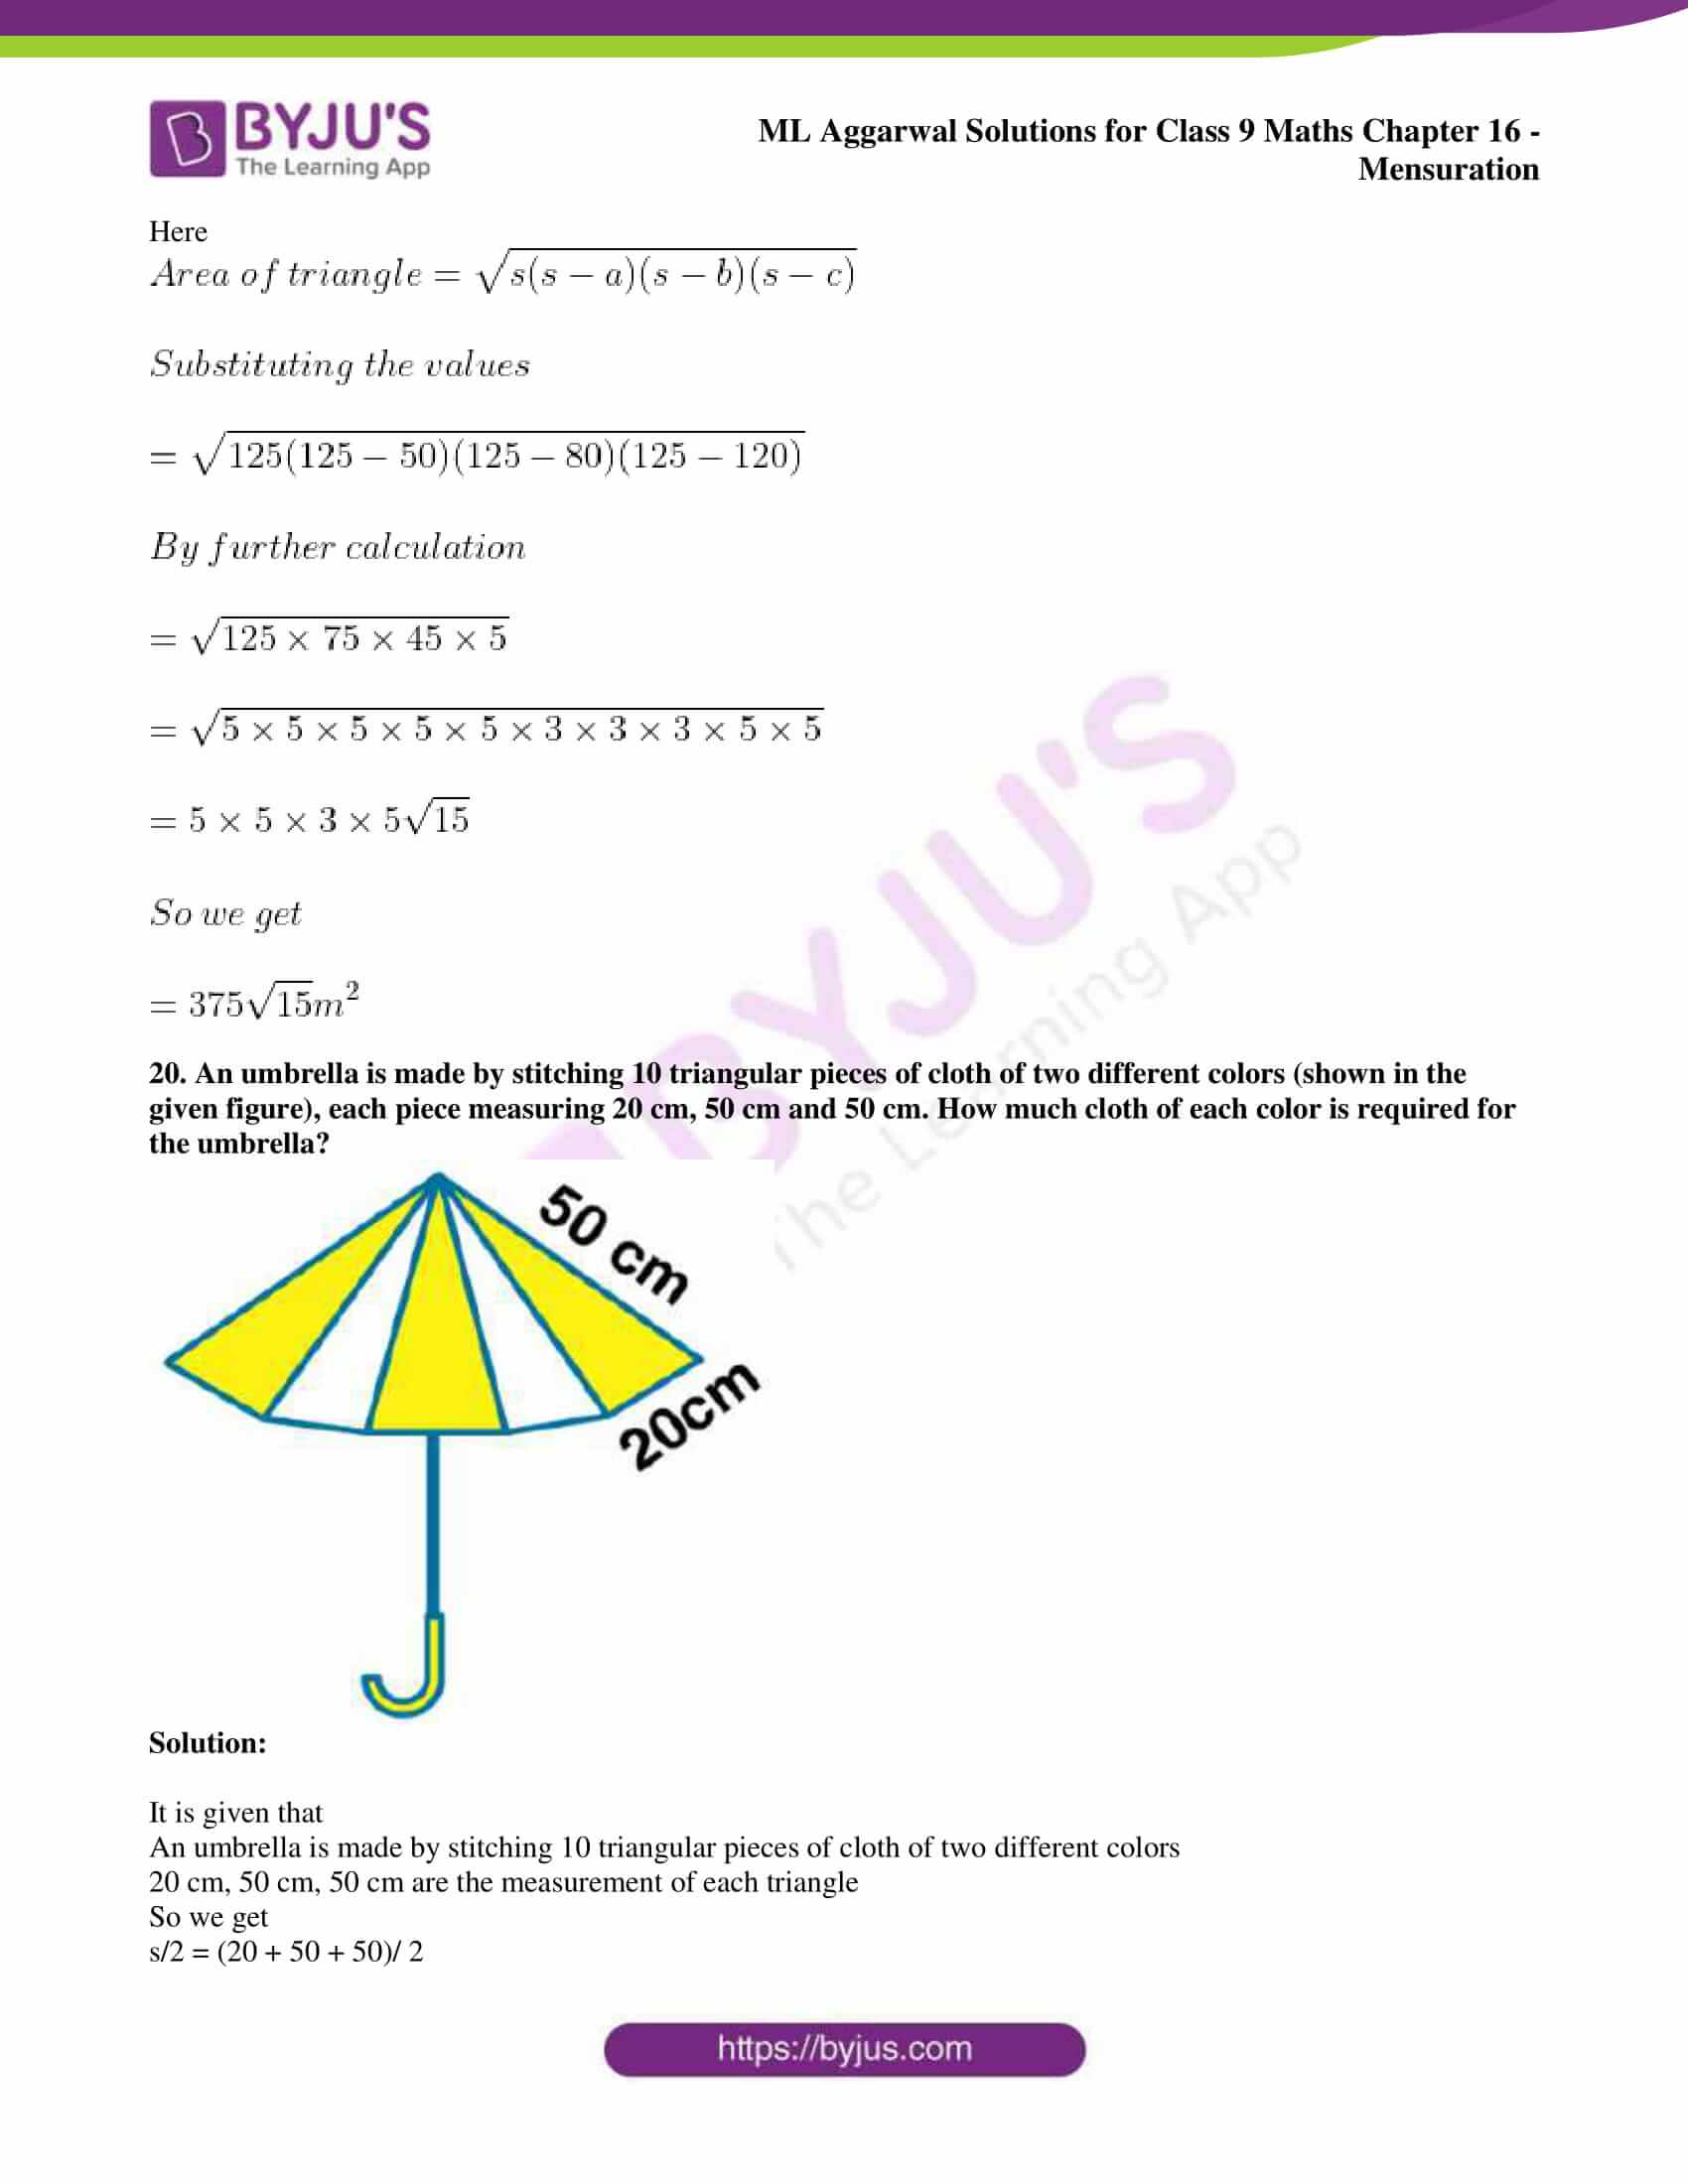 ml aggarwal solutions for class 9 maths chapter 16 019